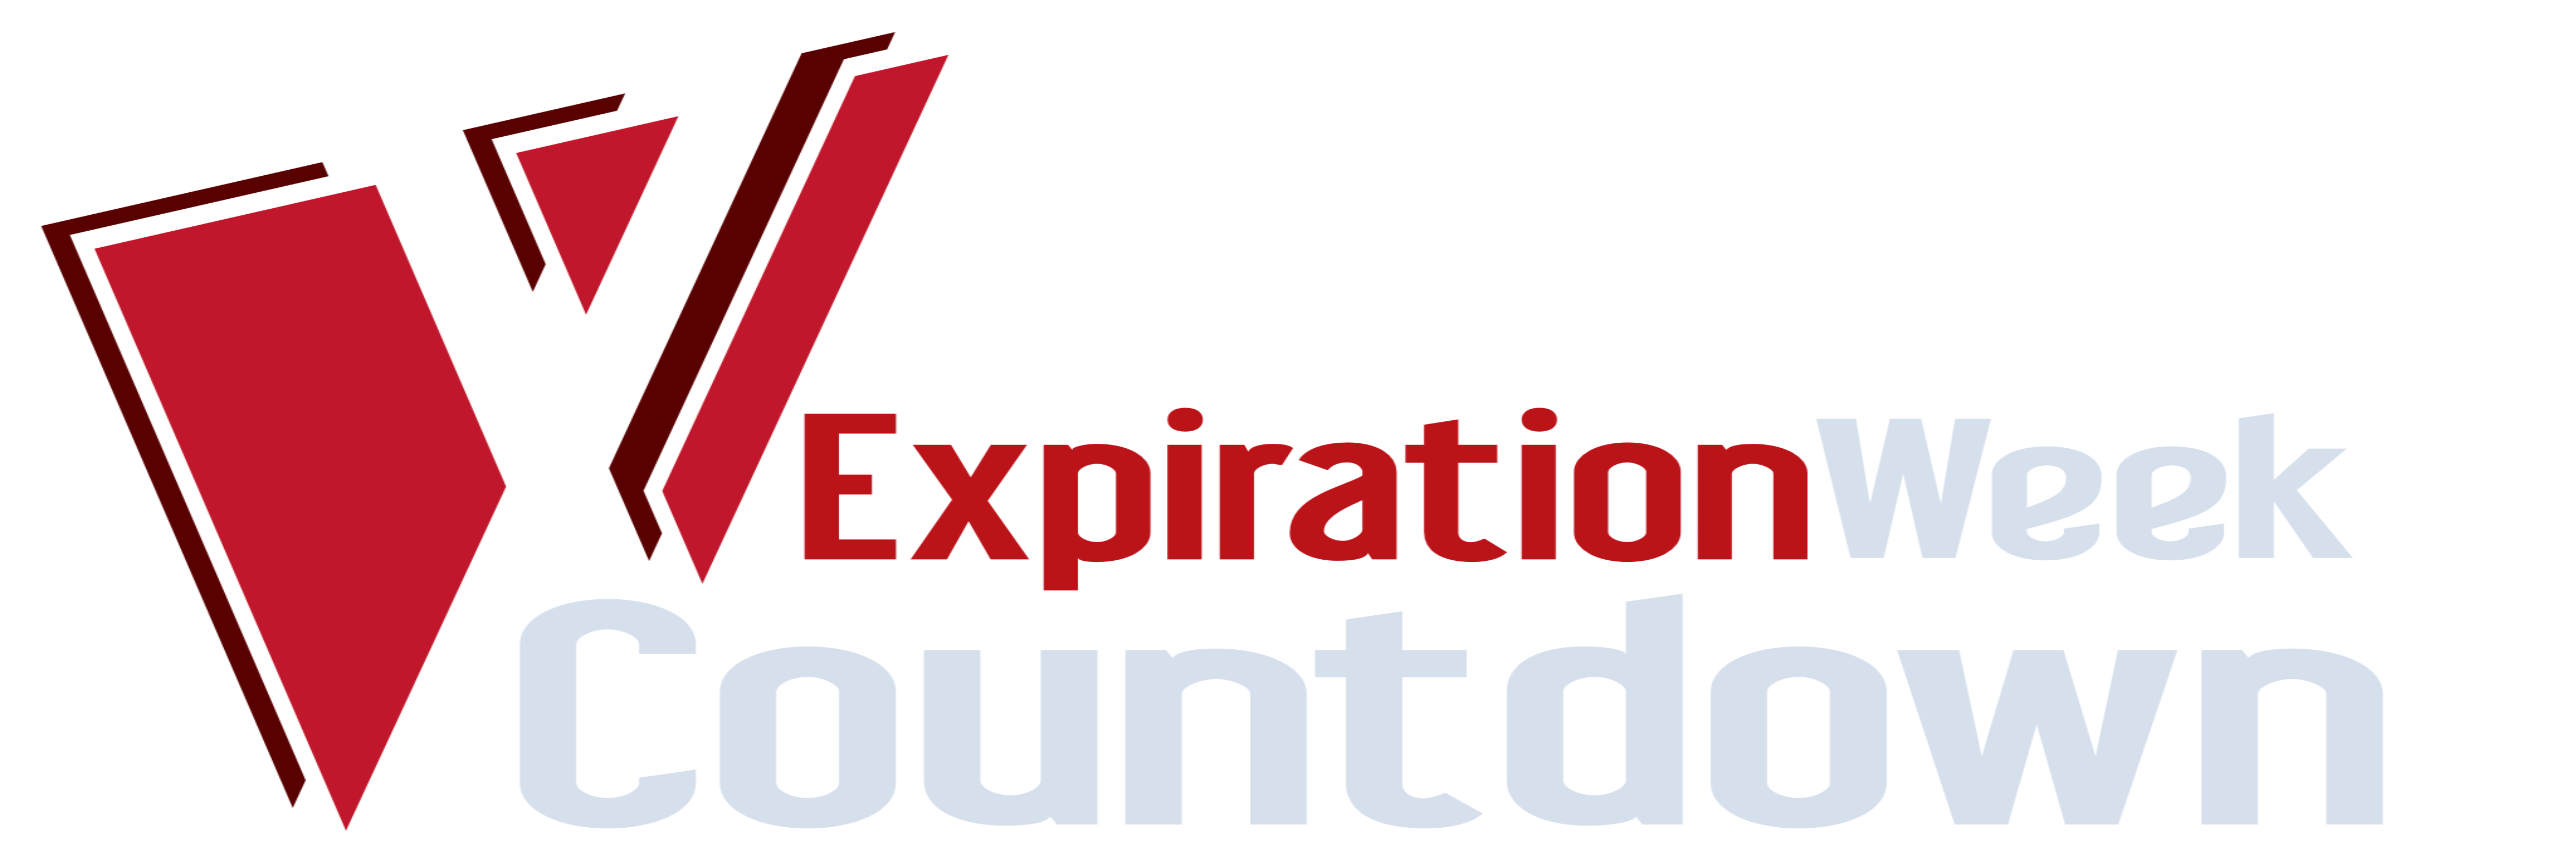 Expiration Week Countdown